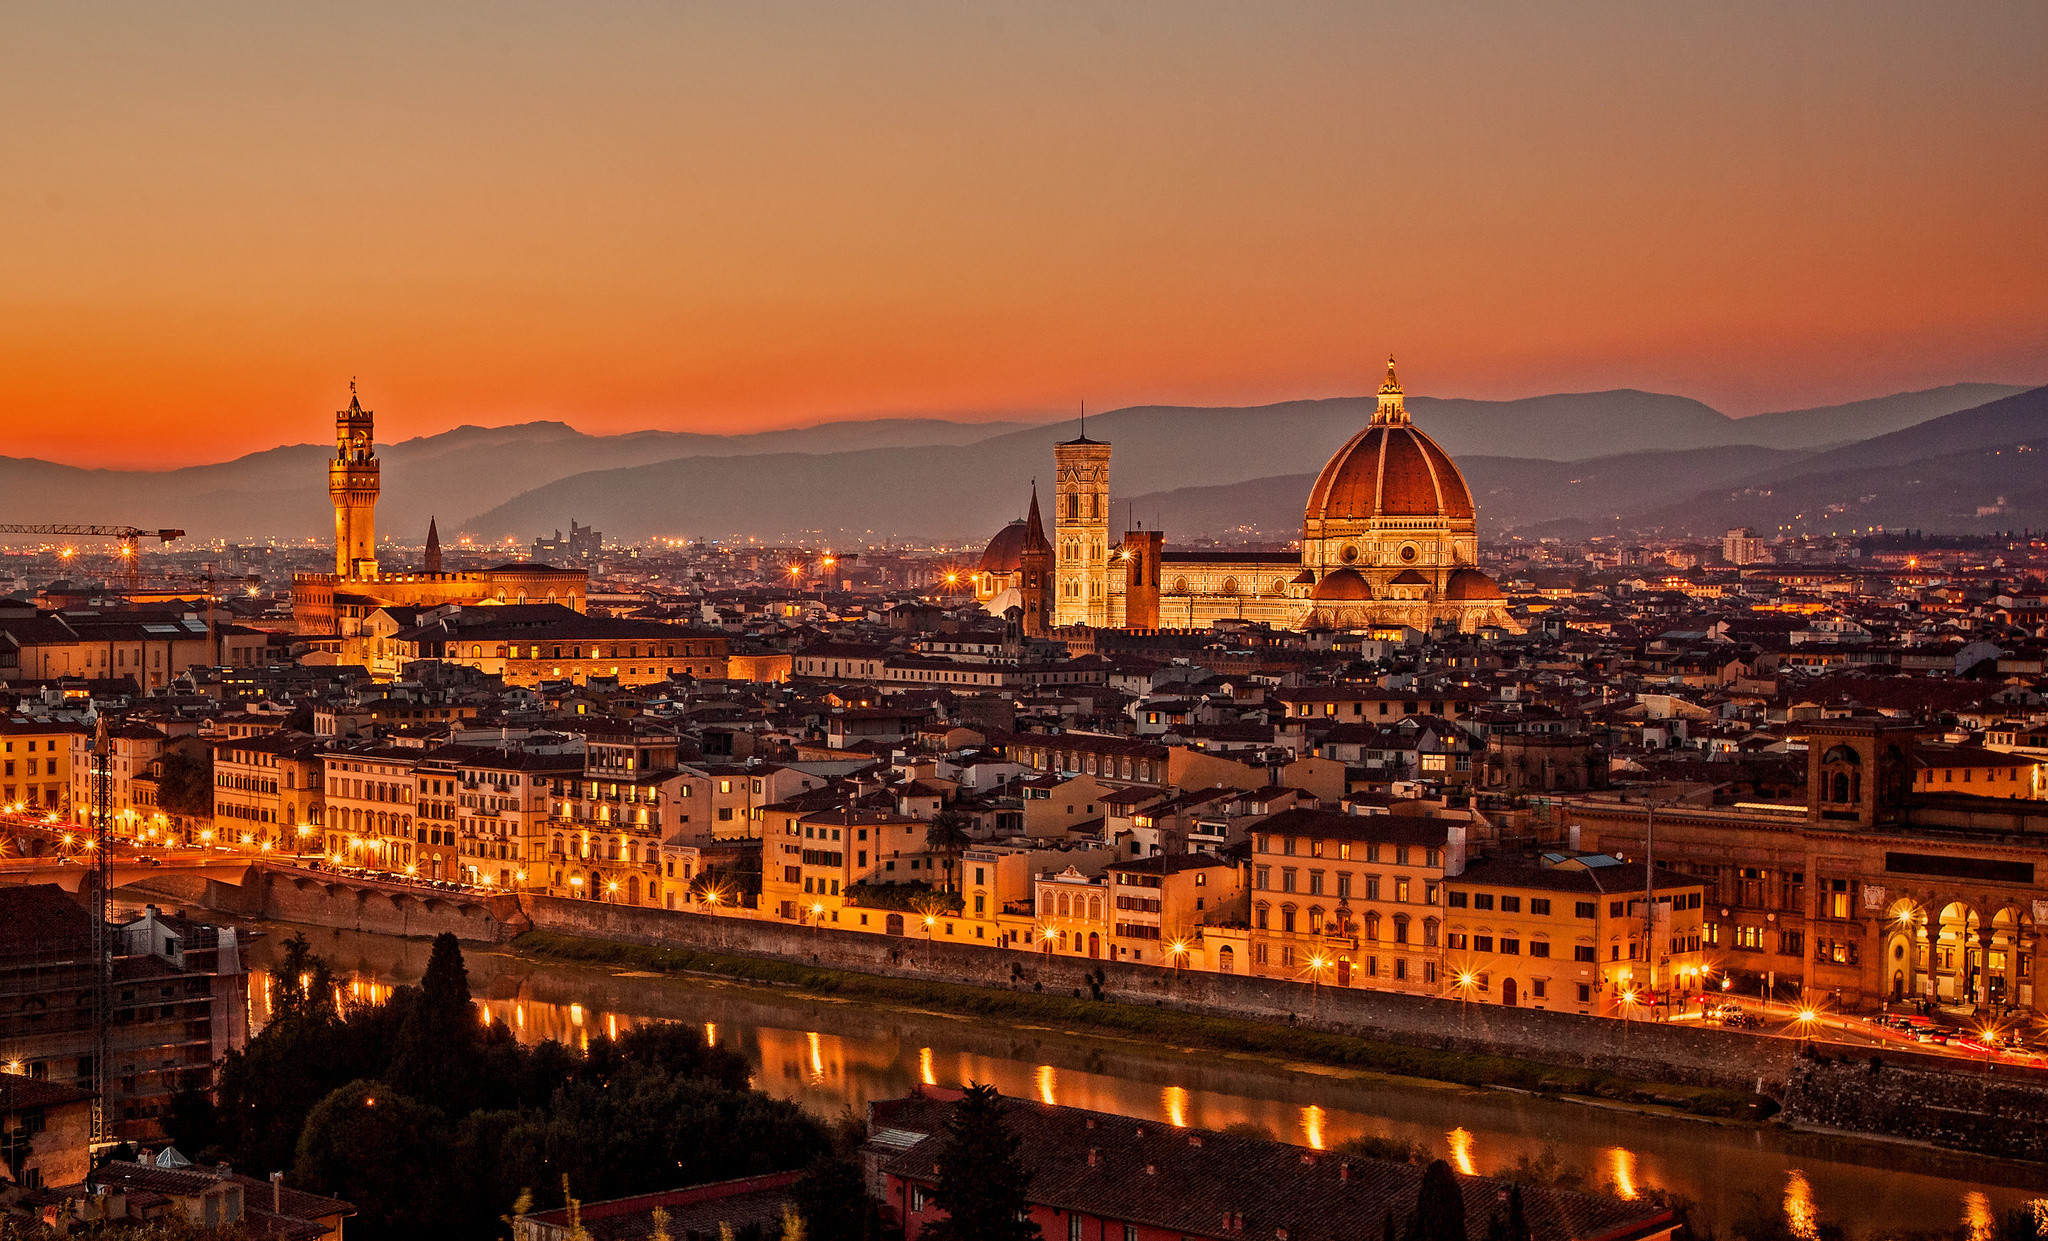 2048x1241 HD Wallpaper | Background Image ID:386766.  Man Made Florence